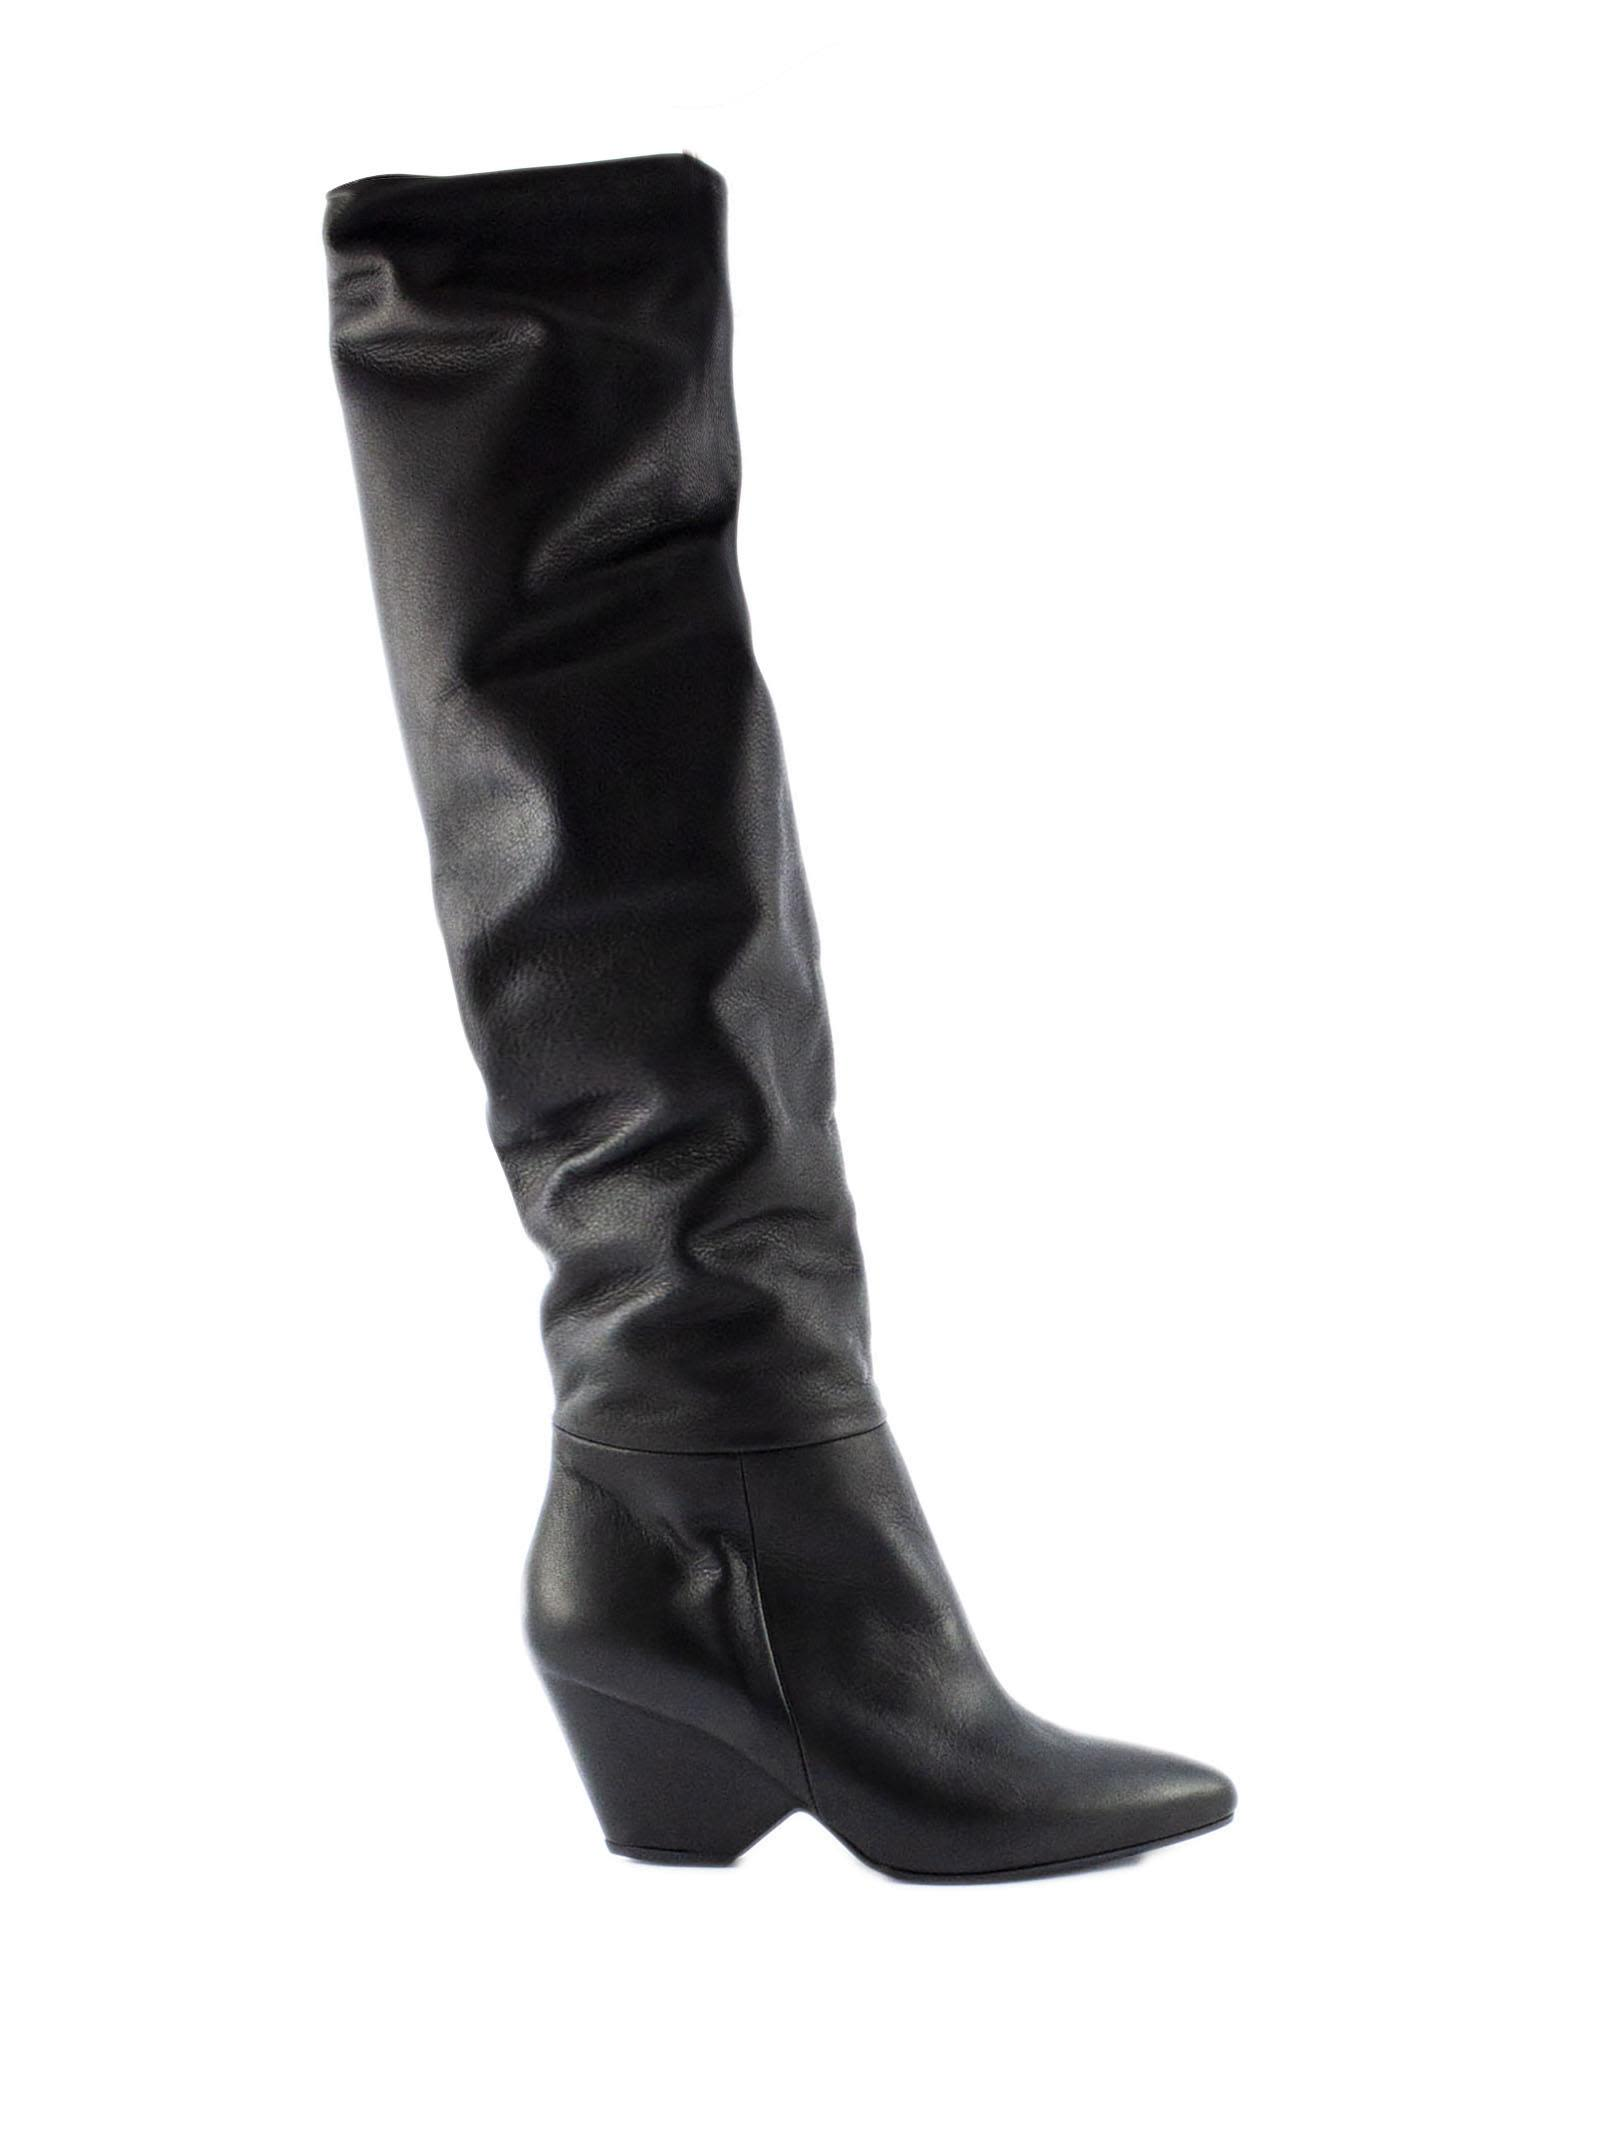 VIC MATIE Black Stretch Leather Boots. in Nero